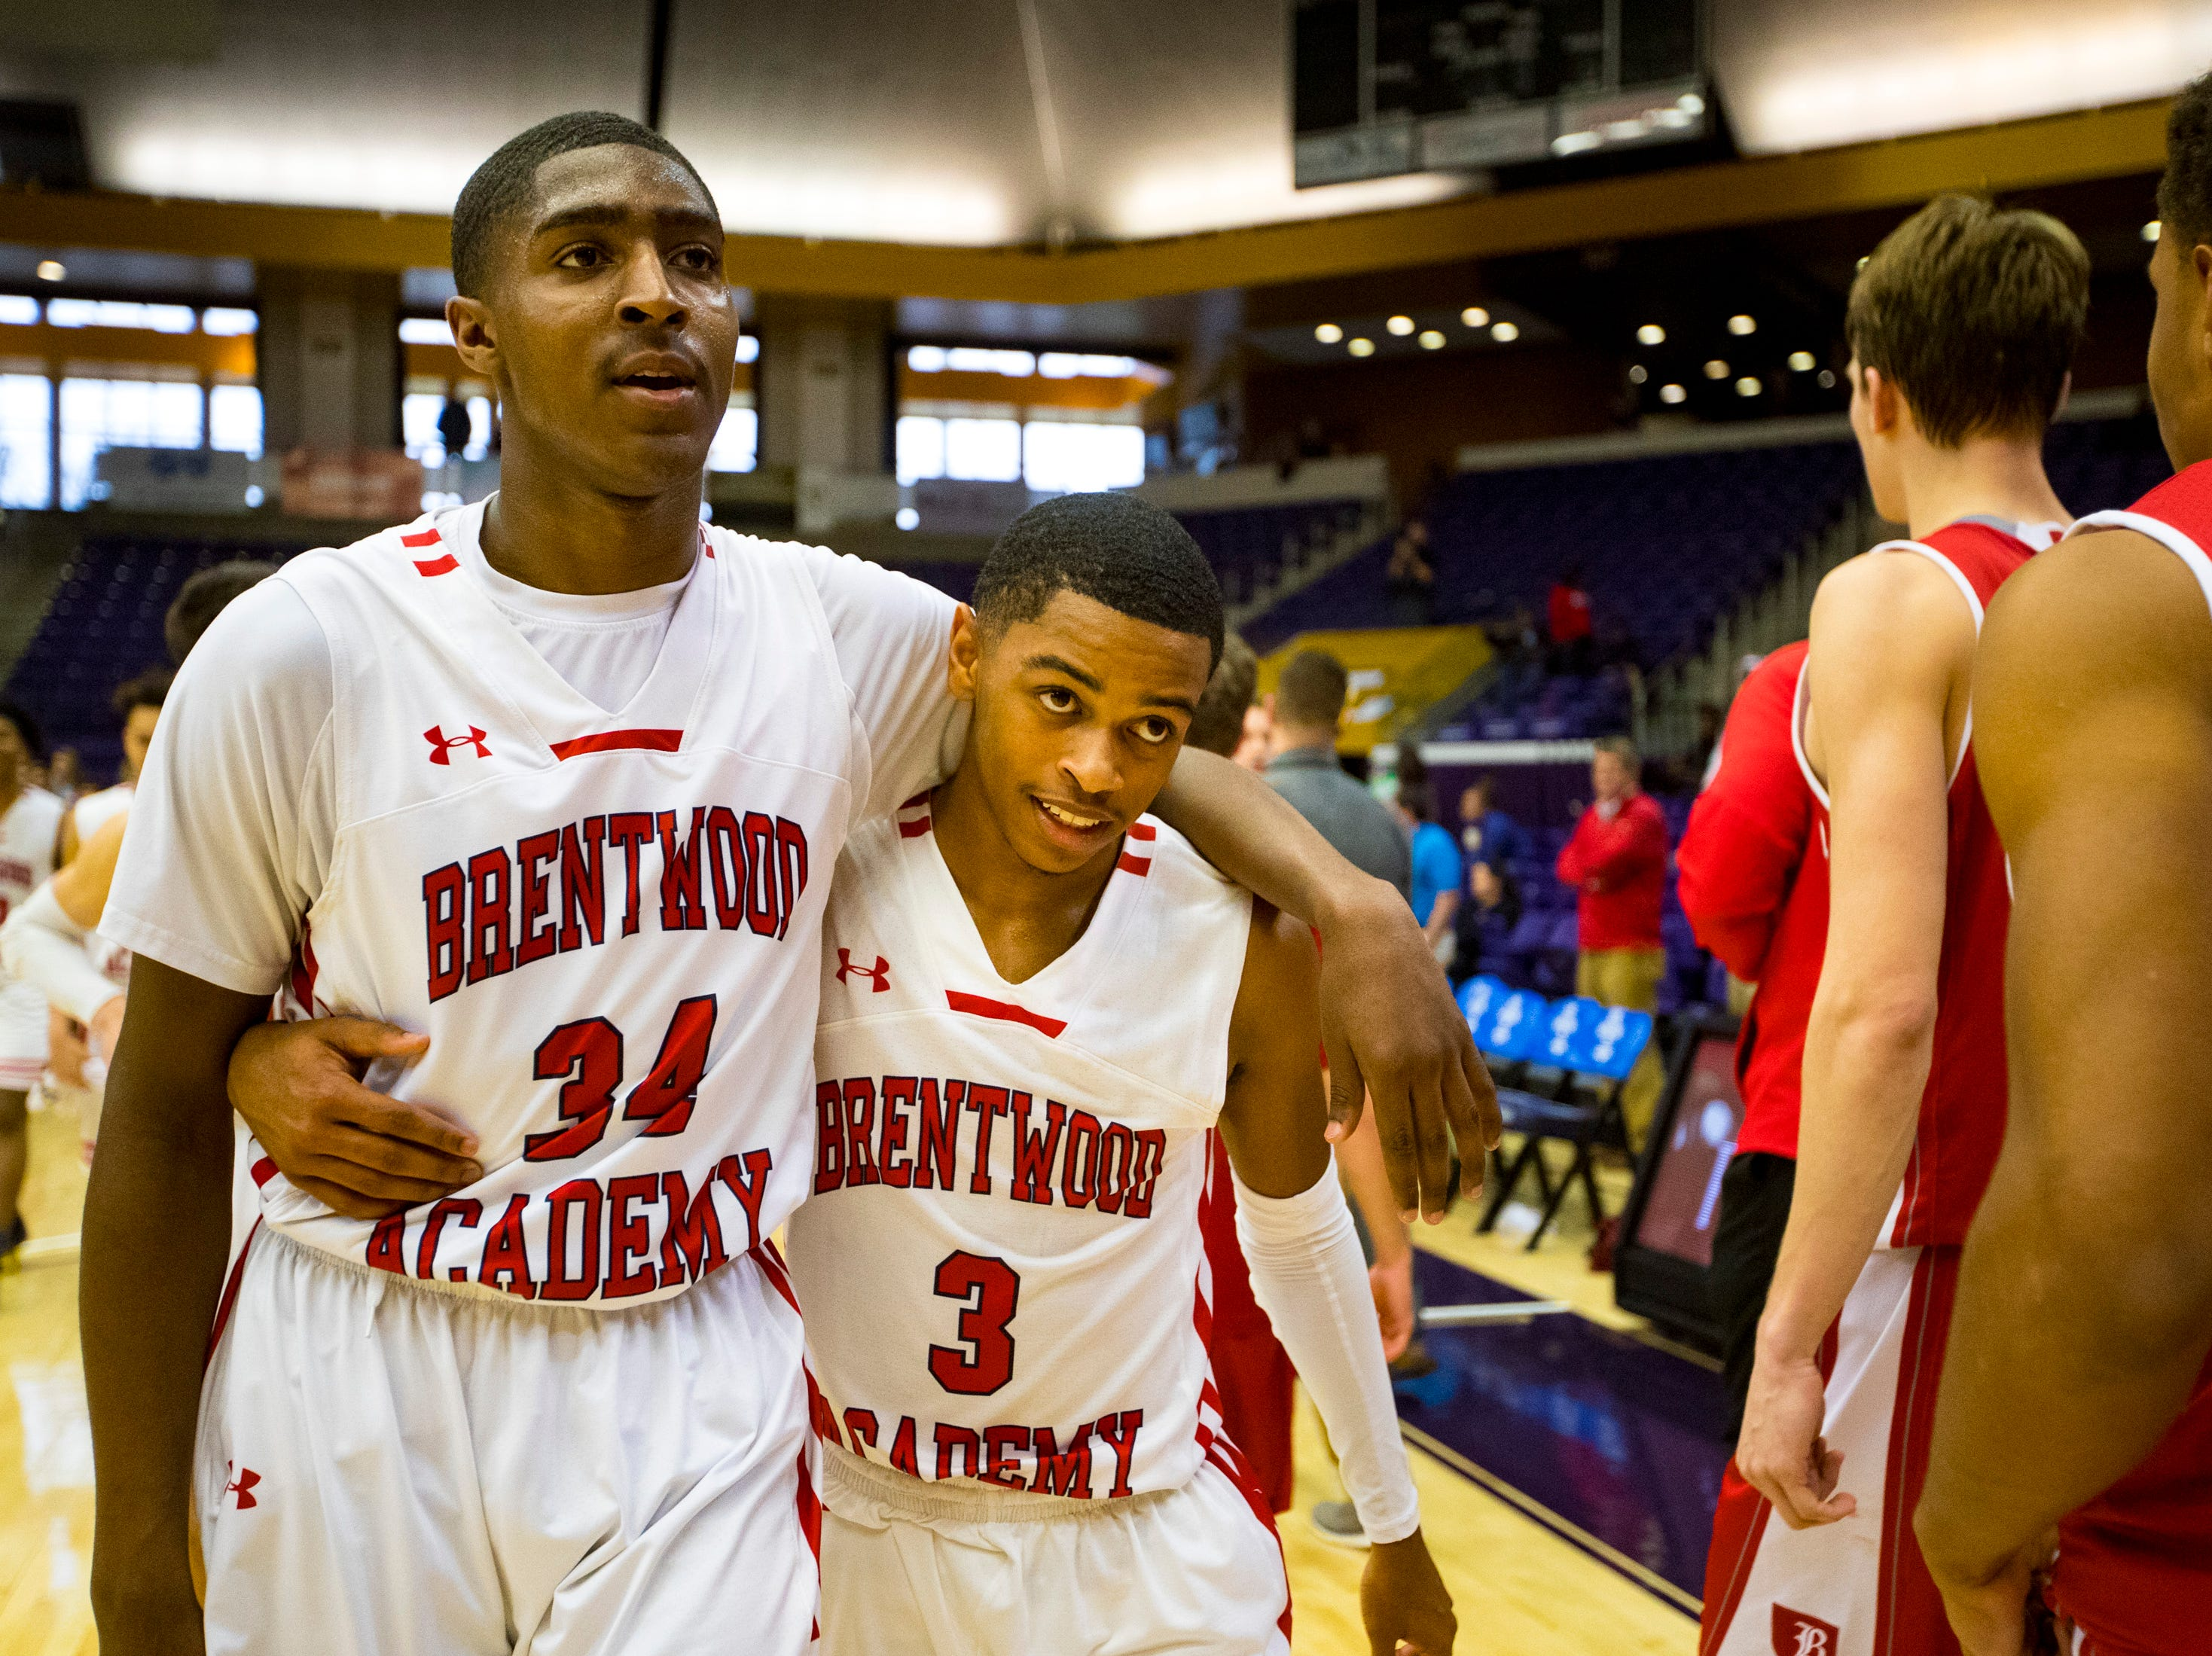 Brentwood Academy's Randy Brady (34) and Brentwood Academy's BJ Davis (3) walk arm in arm after Brentwood Academy's game against Baylor in the semifinal round of the TSSAA Division II Class AA State Championships at Lipscomb University's Allen Arena in Nashville on Thursday, Feb. 28, 2019.